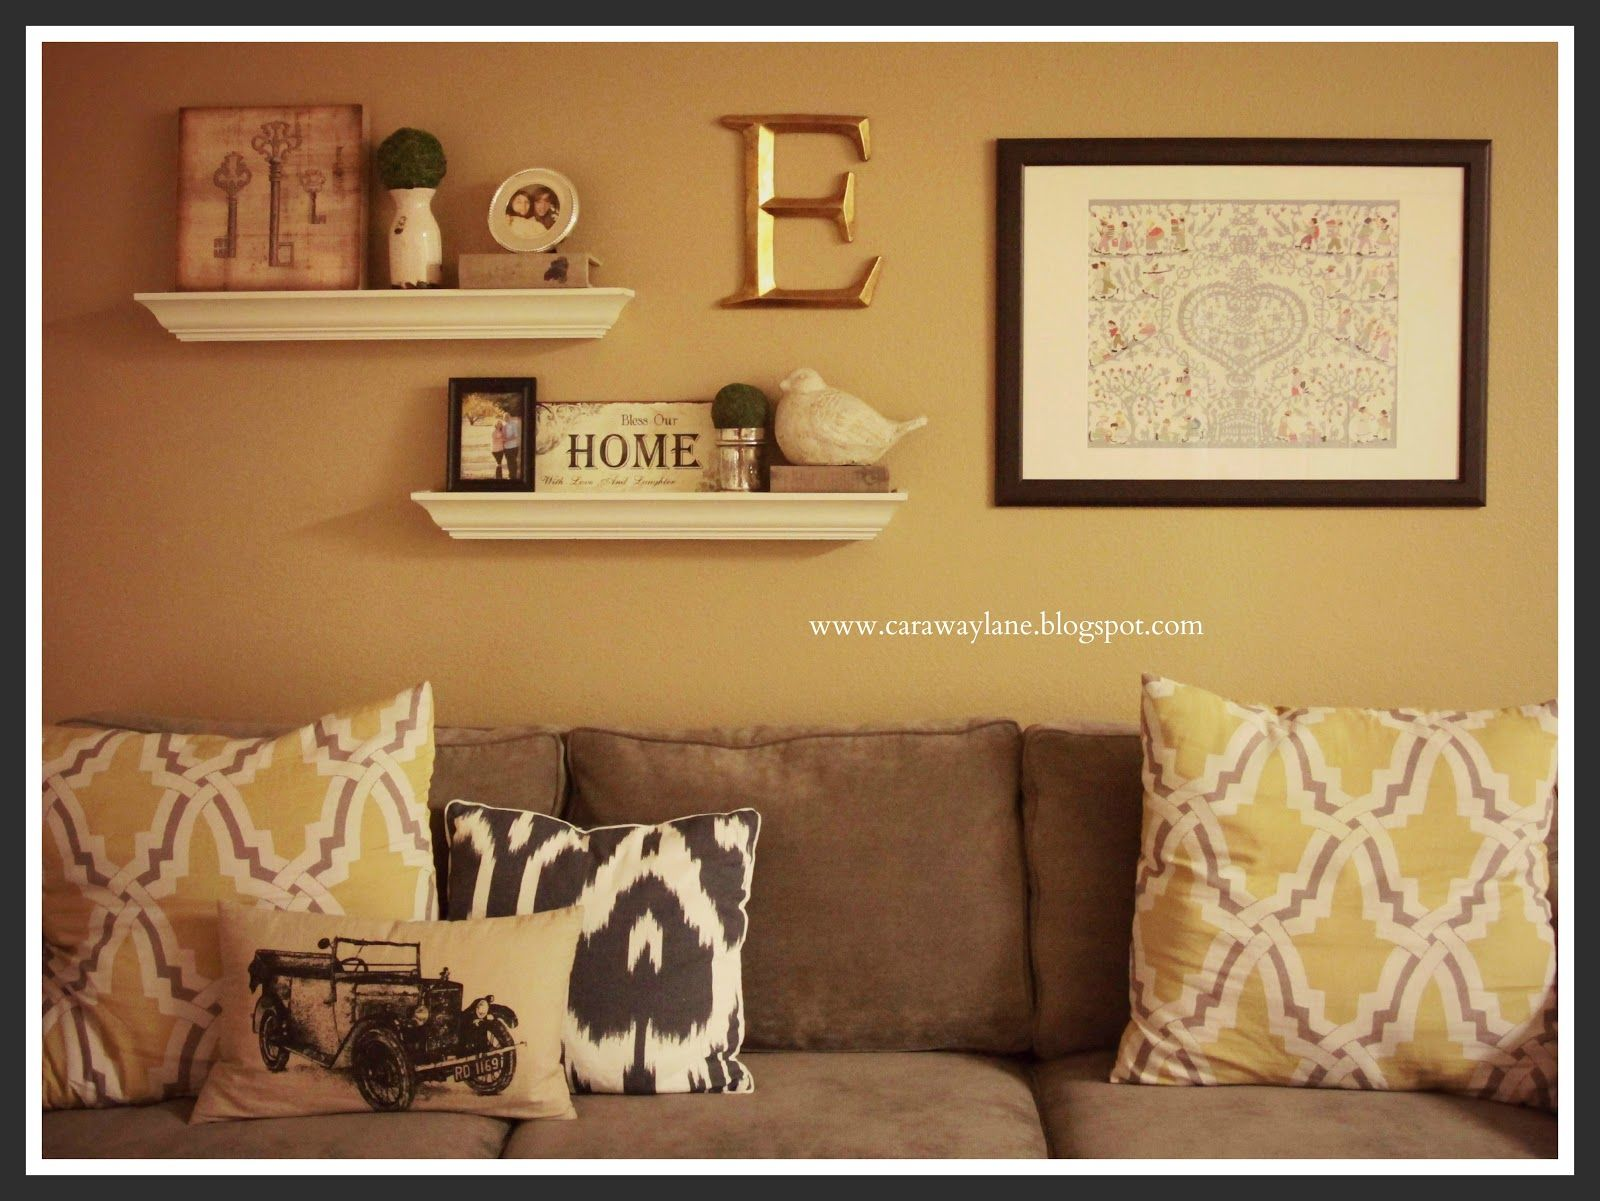 Wall Sofa Cheers Clayton Costco Decorate Over A Above The Couch Decor Home